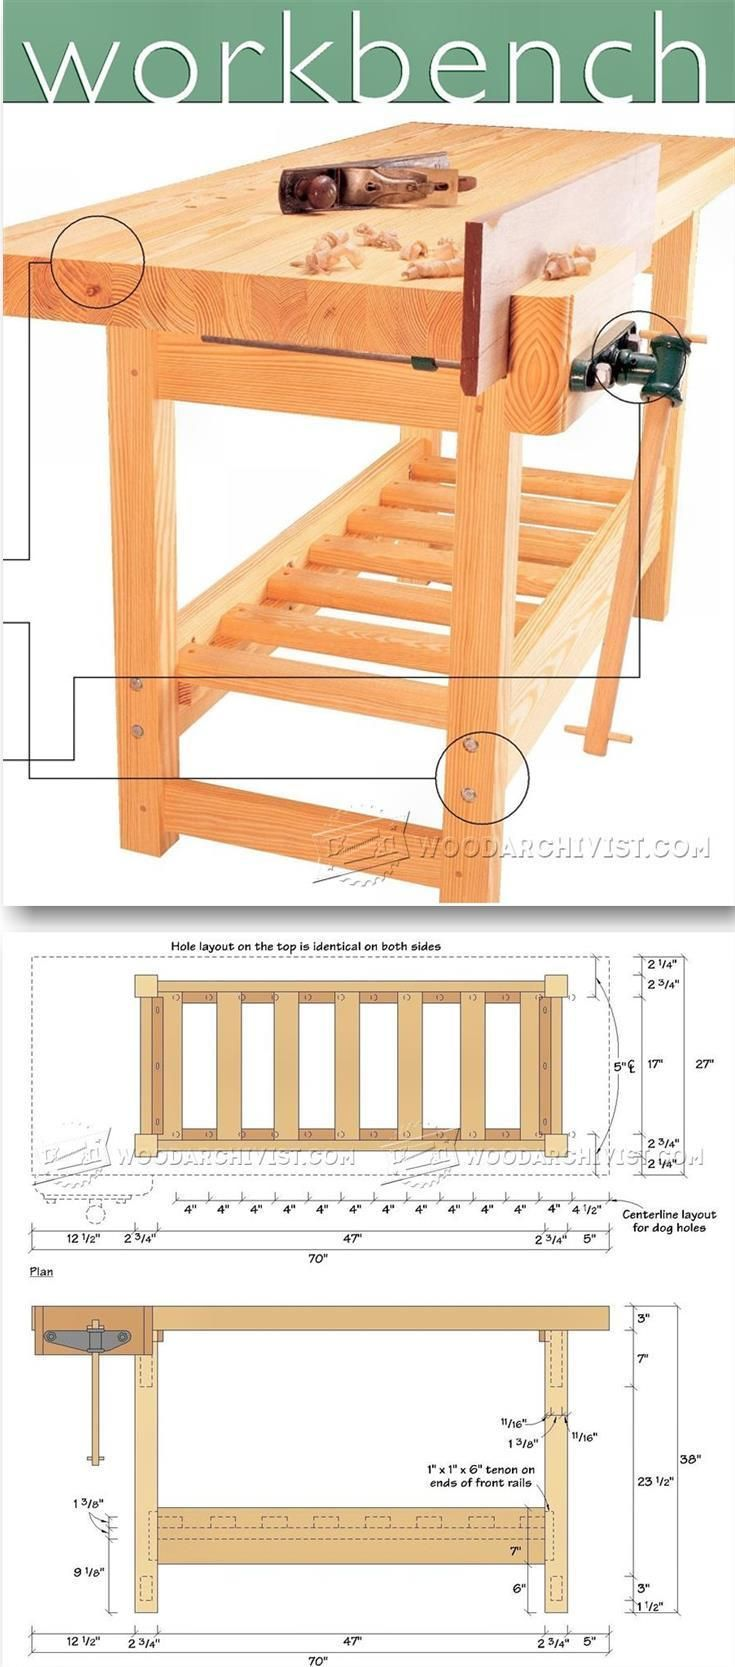 Wood Workbench Plan - Workshop Solutions Plans, Tips and Tricks | WoodArchivist.com